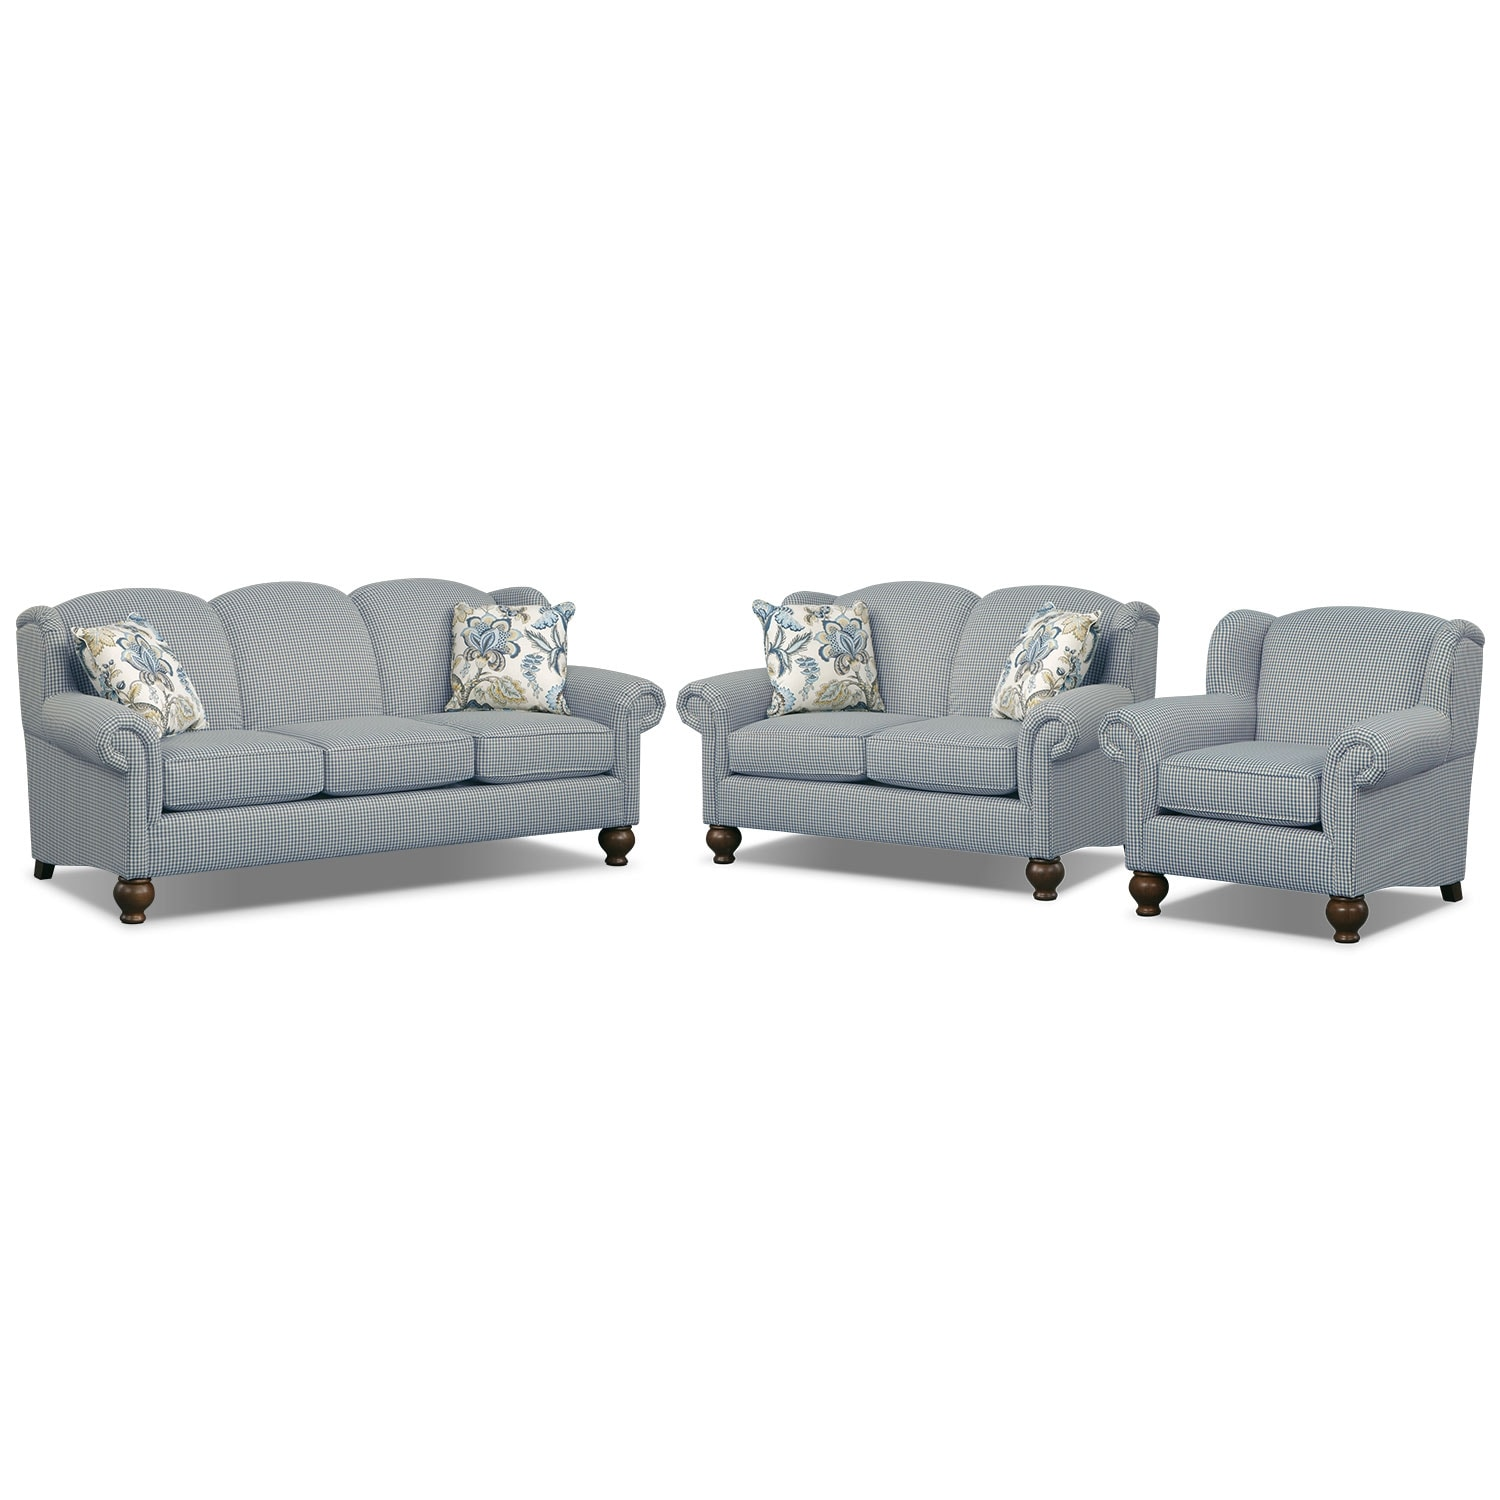 Caroline blue 3 pc living room for Furniture 3 room package